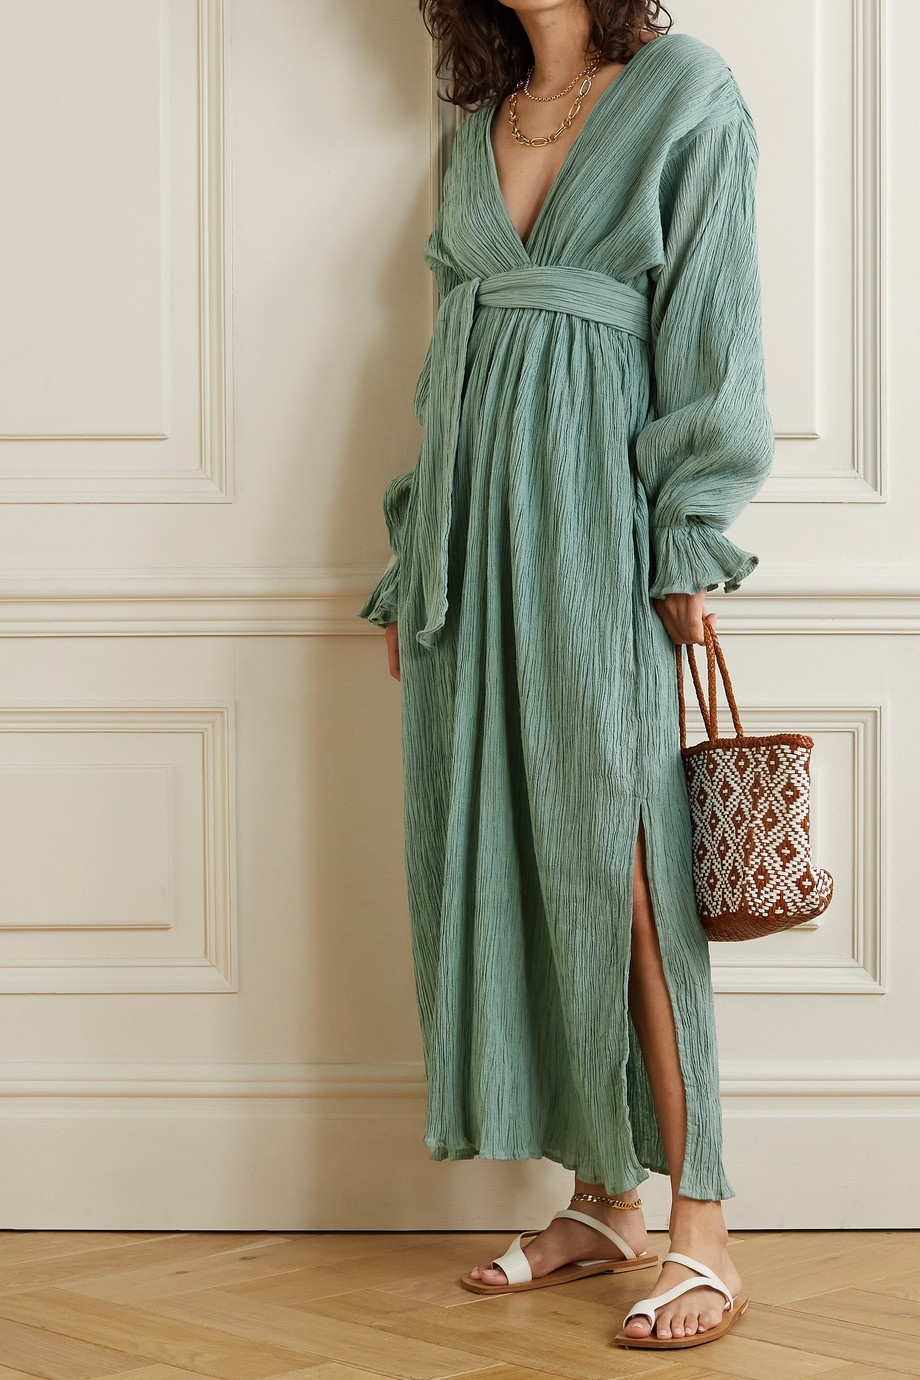 Savannah Morrow The Label + NET SUSTAIN Mahria belted crinkled organic cotton-gauze maxi dress